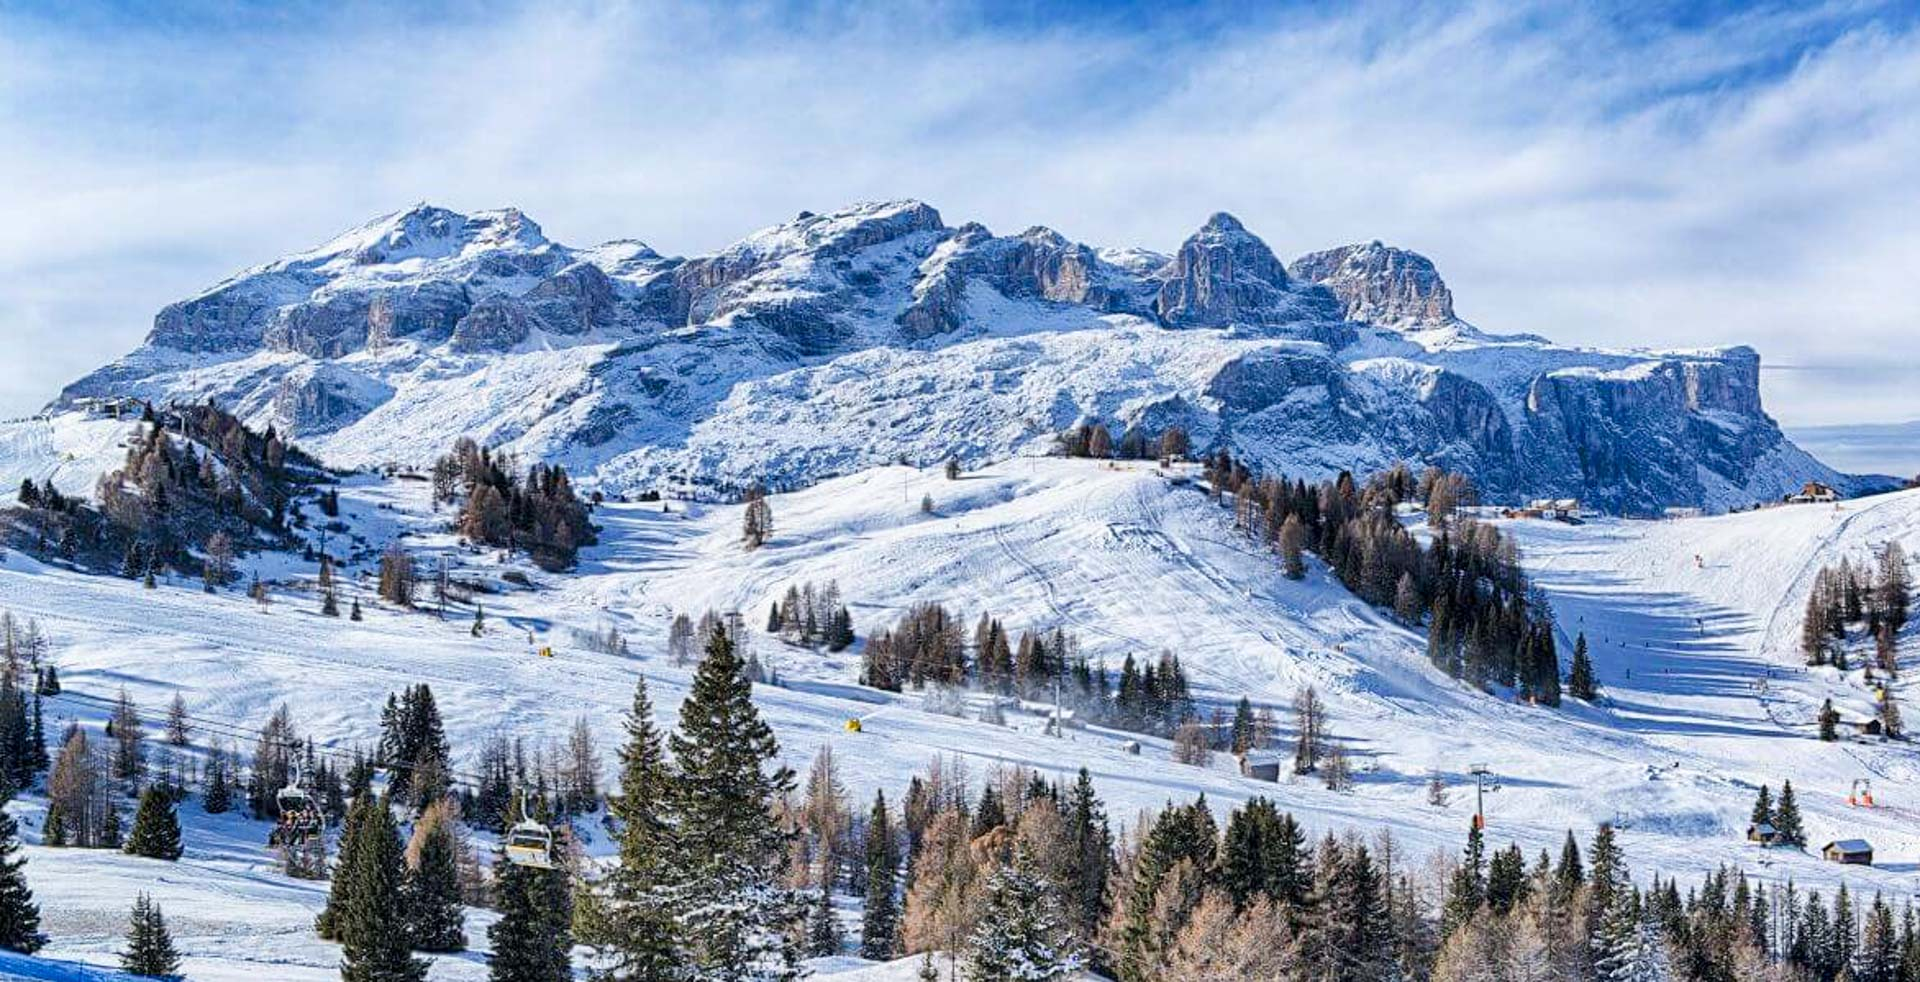 The peaks of the snow-covered Dolomite mountains rise up behind the ski slopes of La Villa ski resort